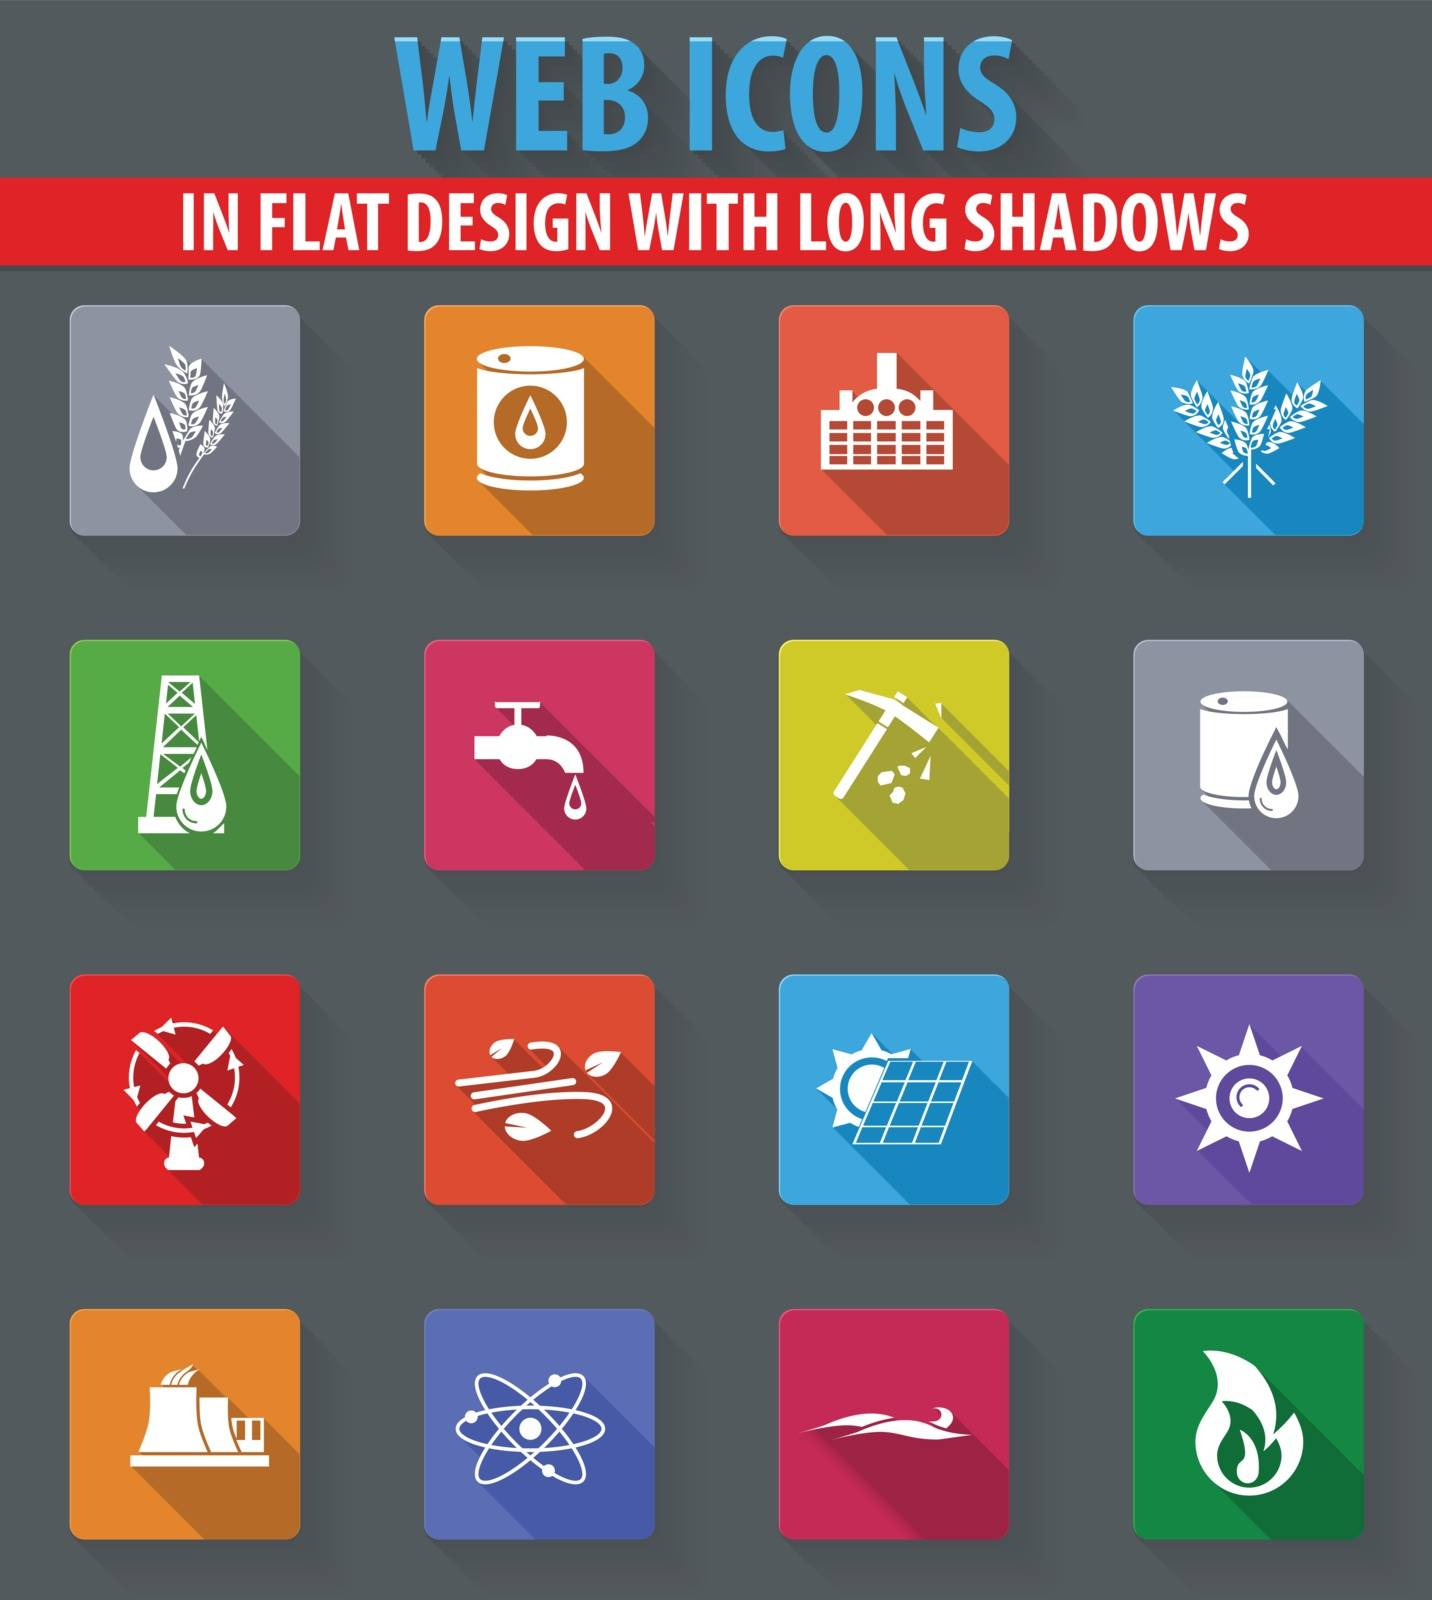 Fuel web icons in flat design with long shadows